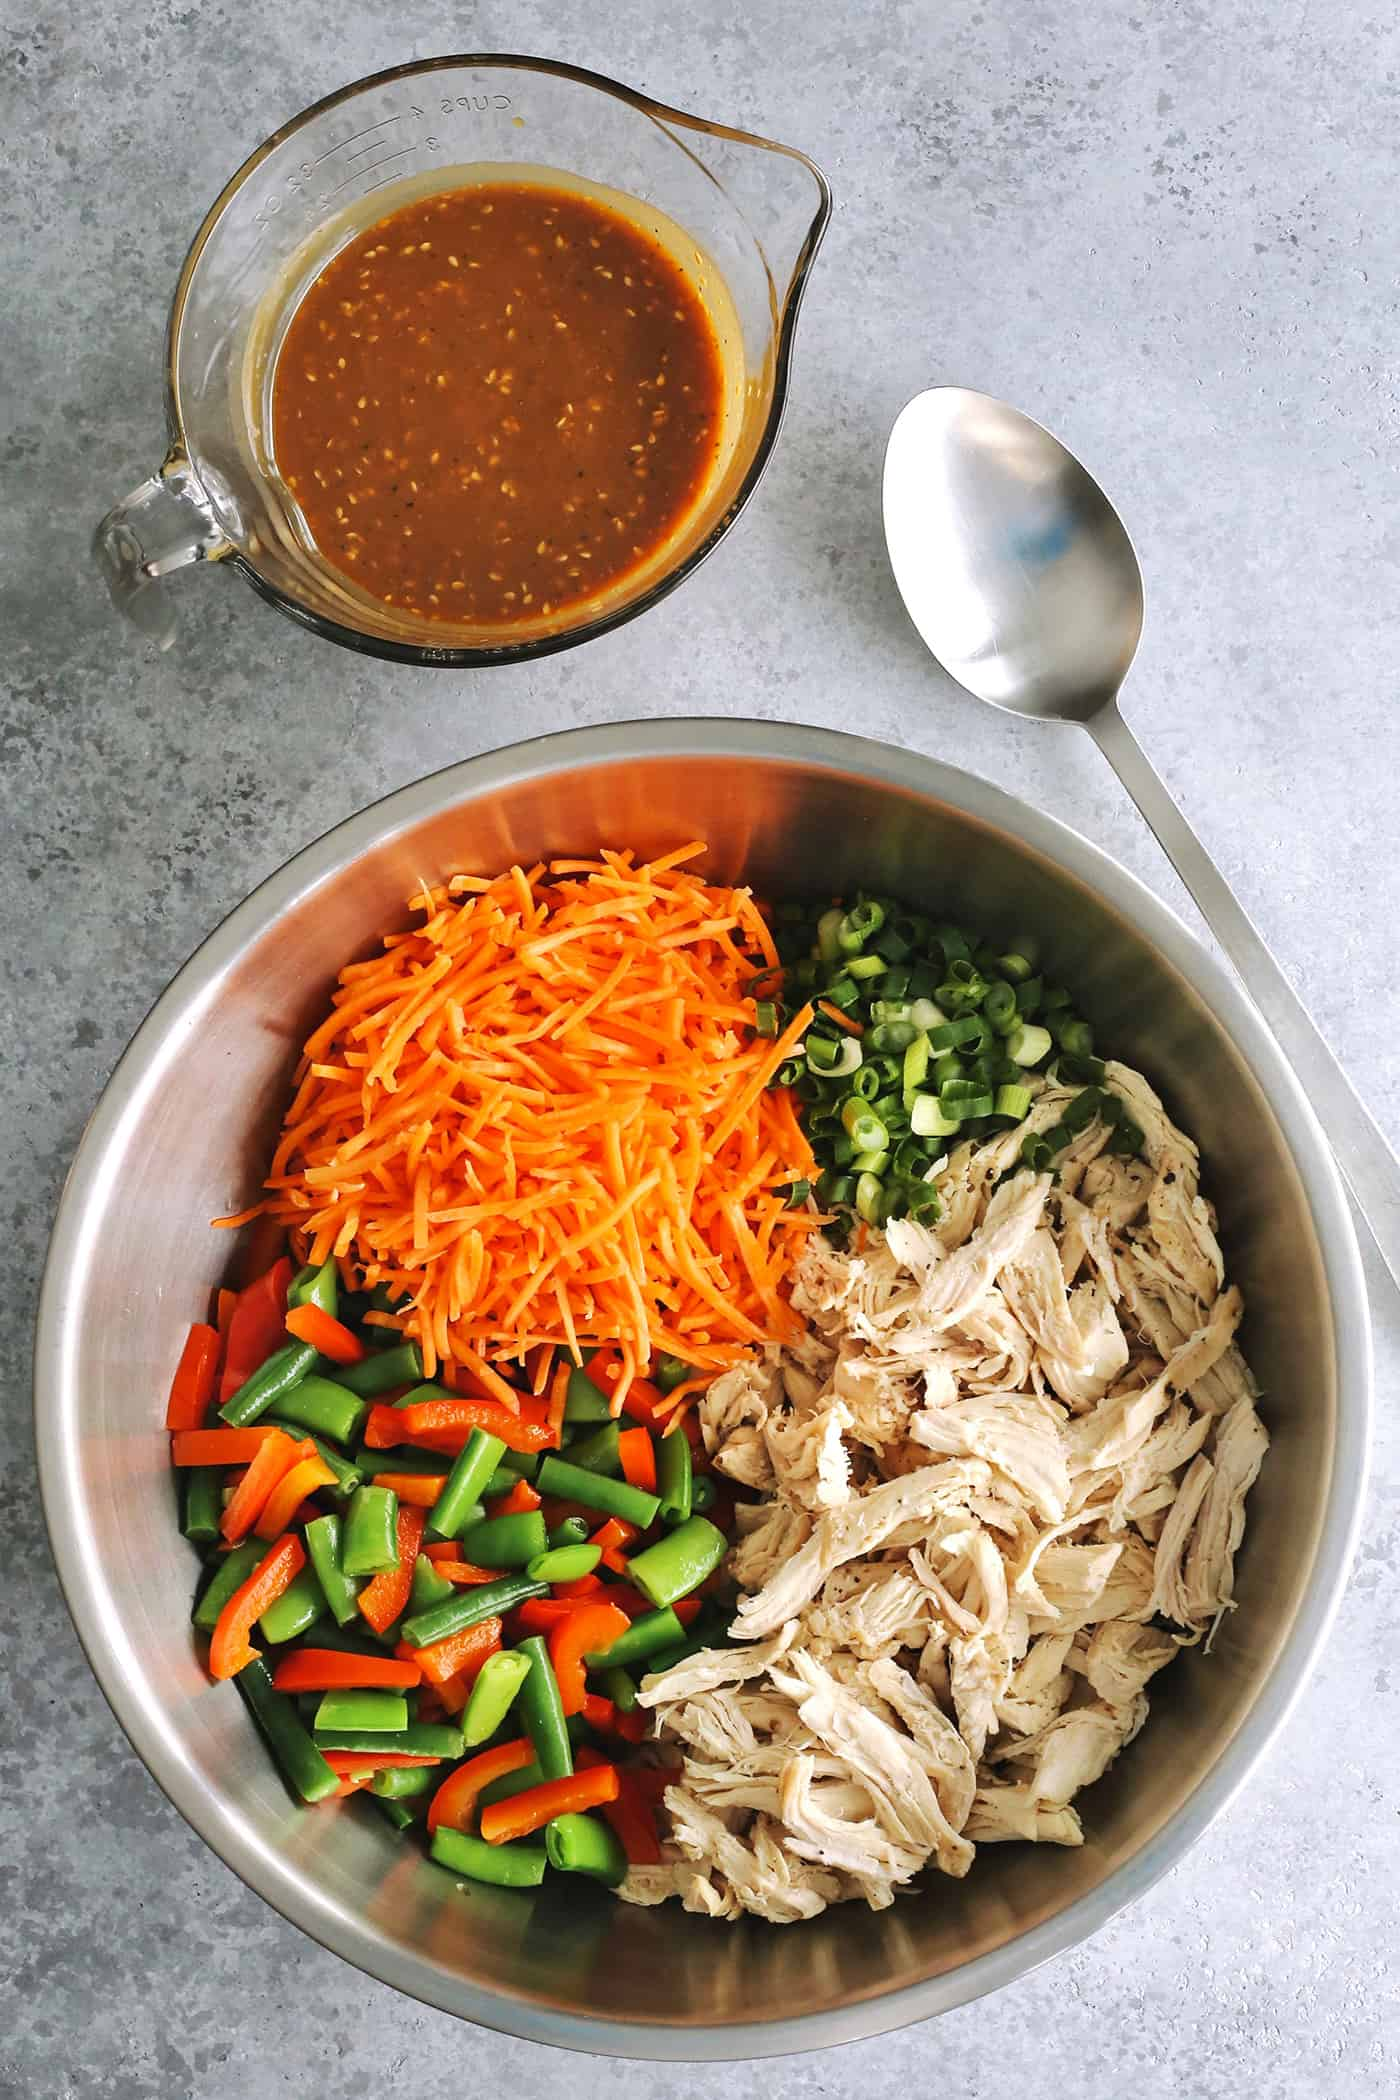 shredded chicken and cut vegetables in a large stainless steel bow, with a glass measure of peanut dressing on the side